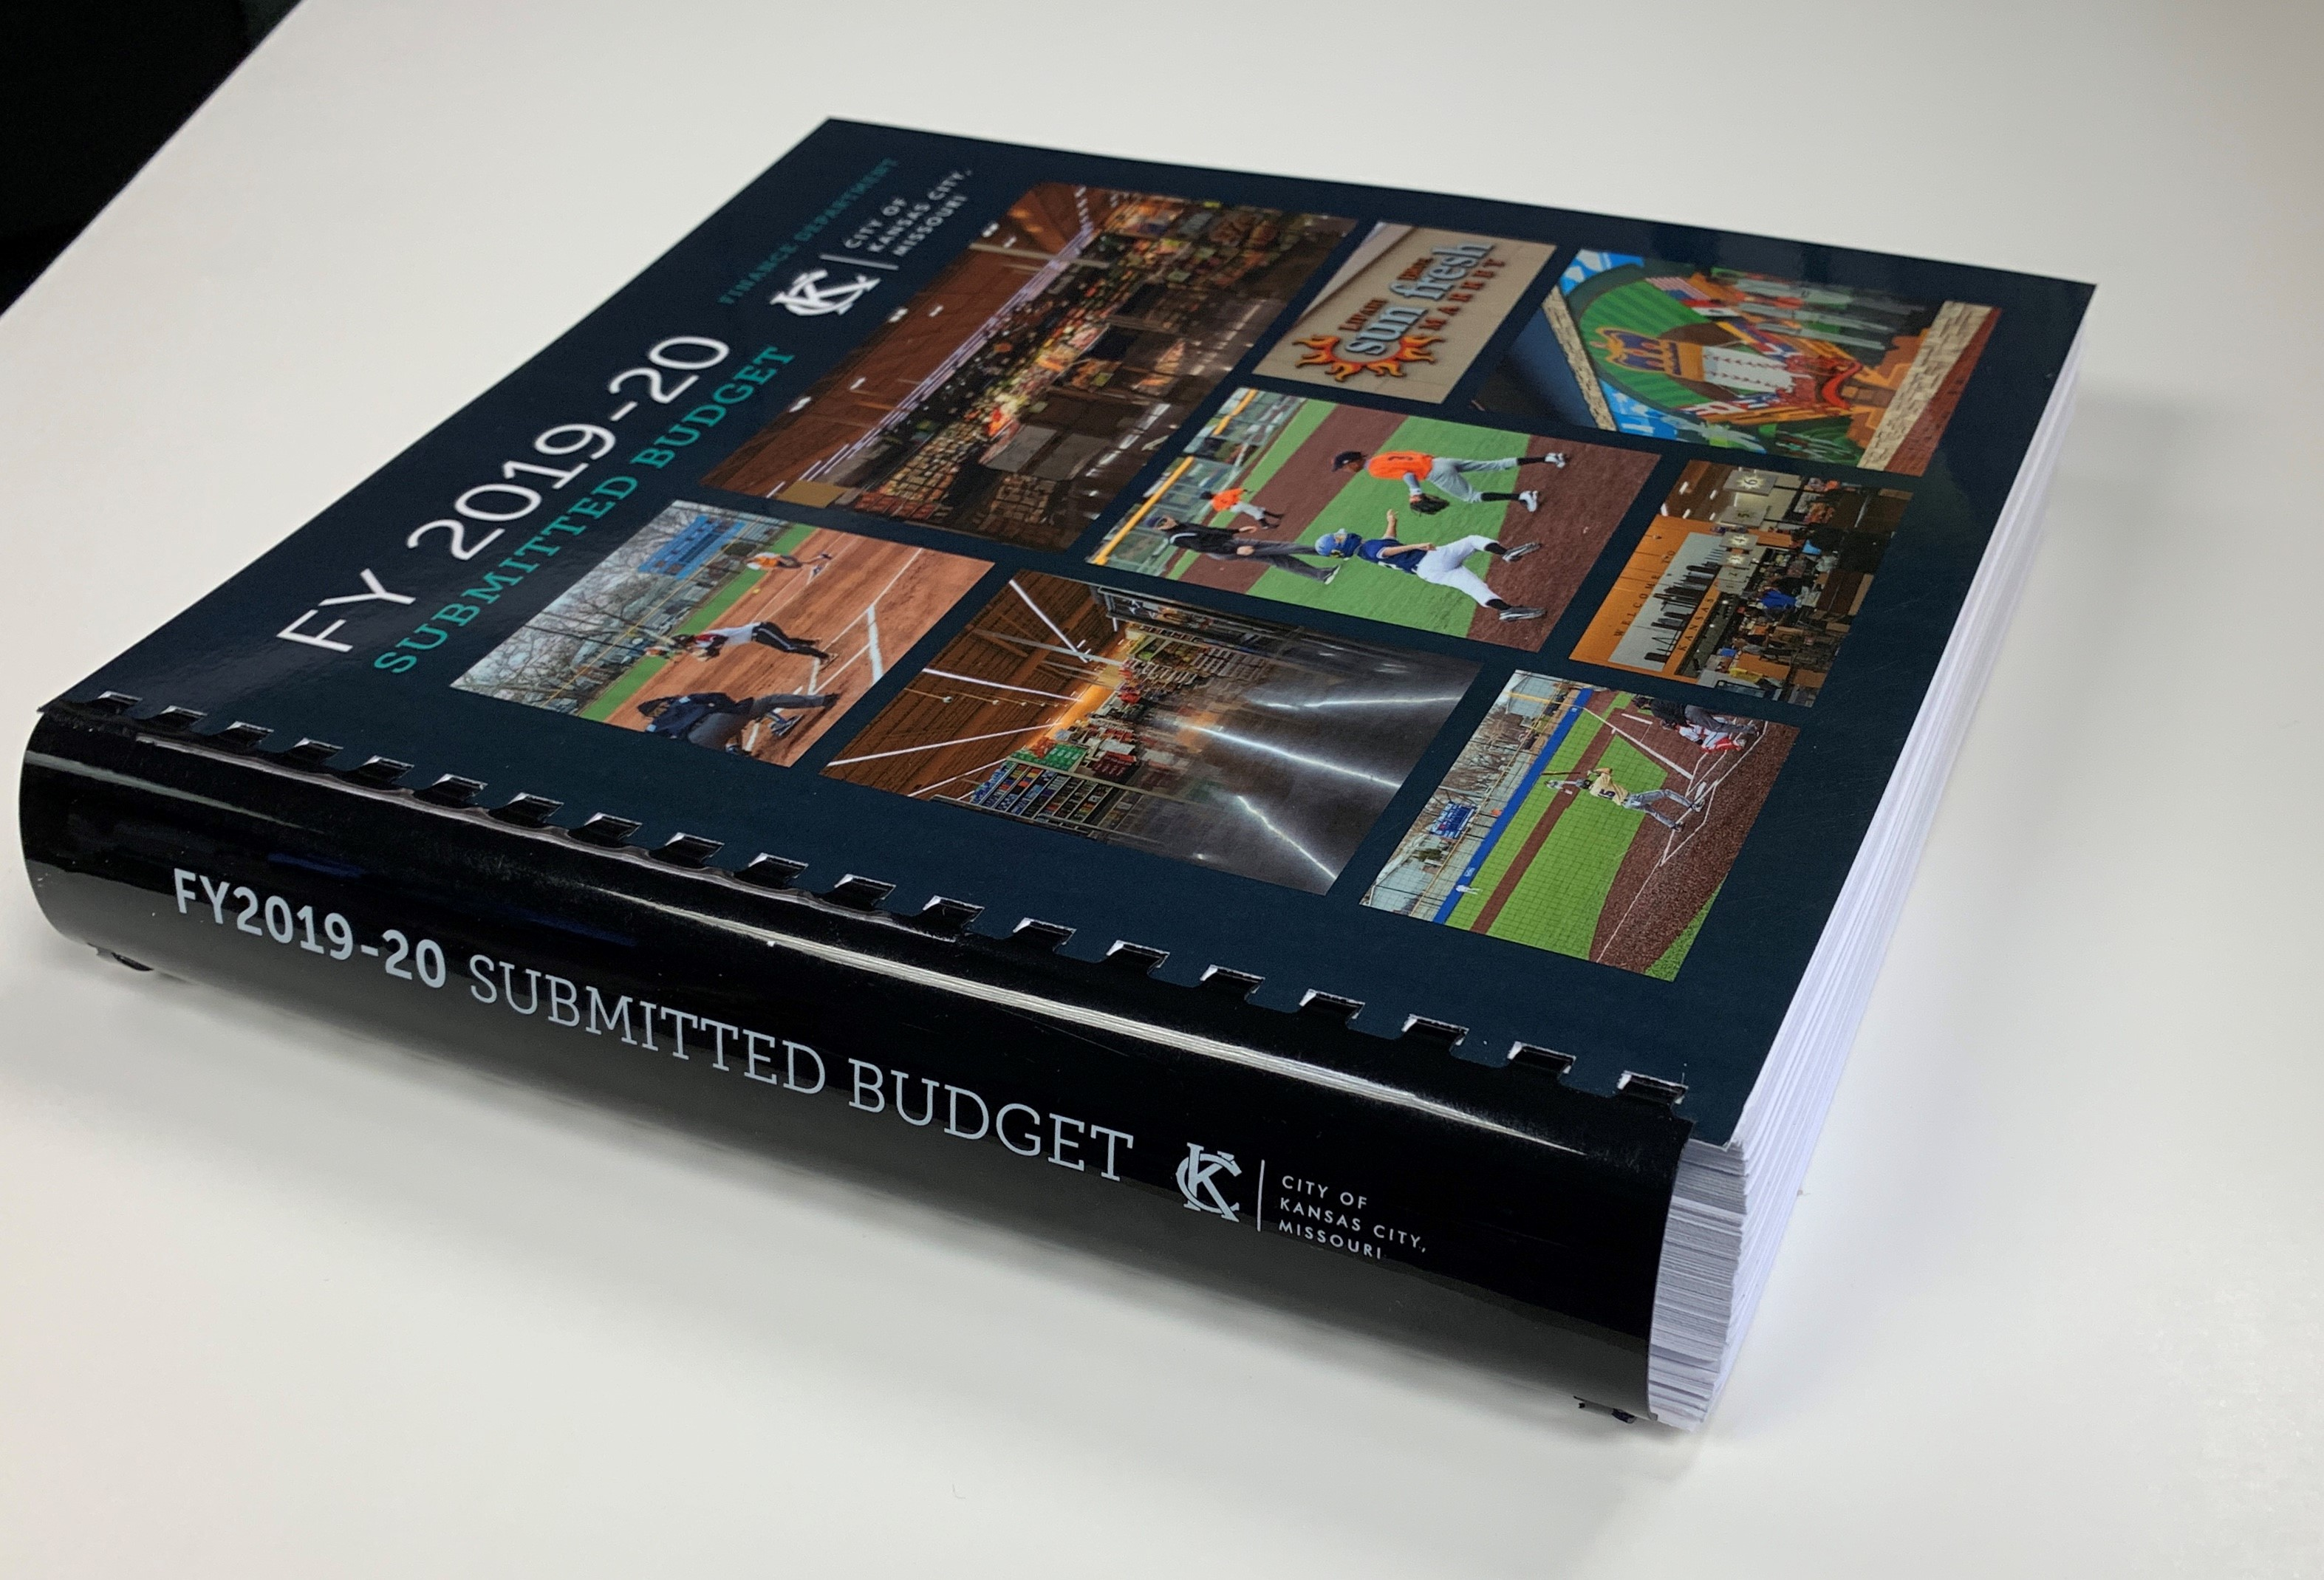 FY2019-20 Submitted Budget